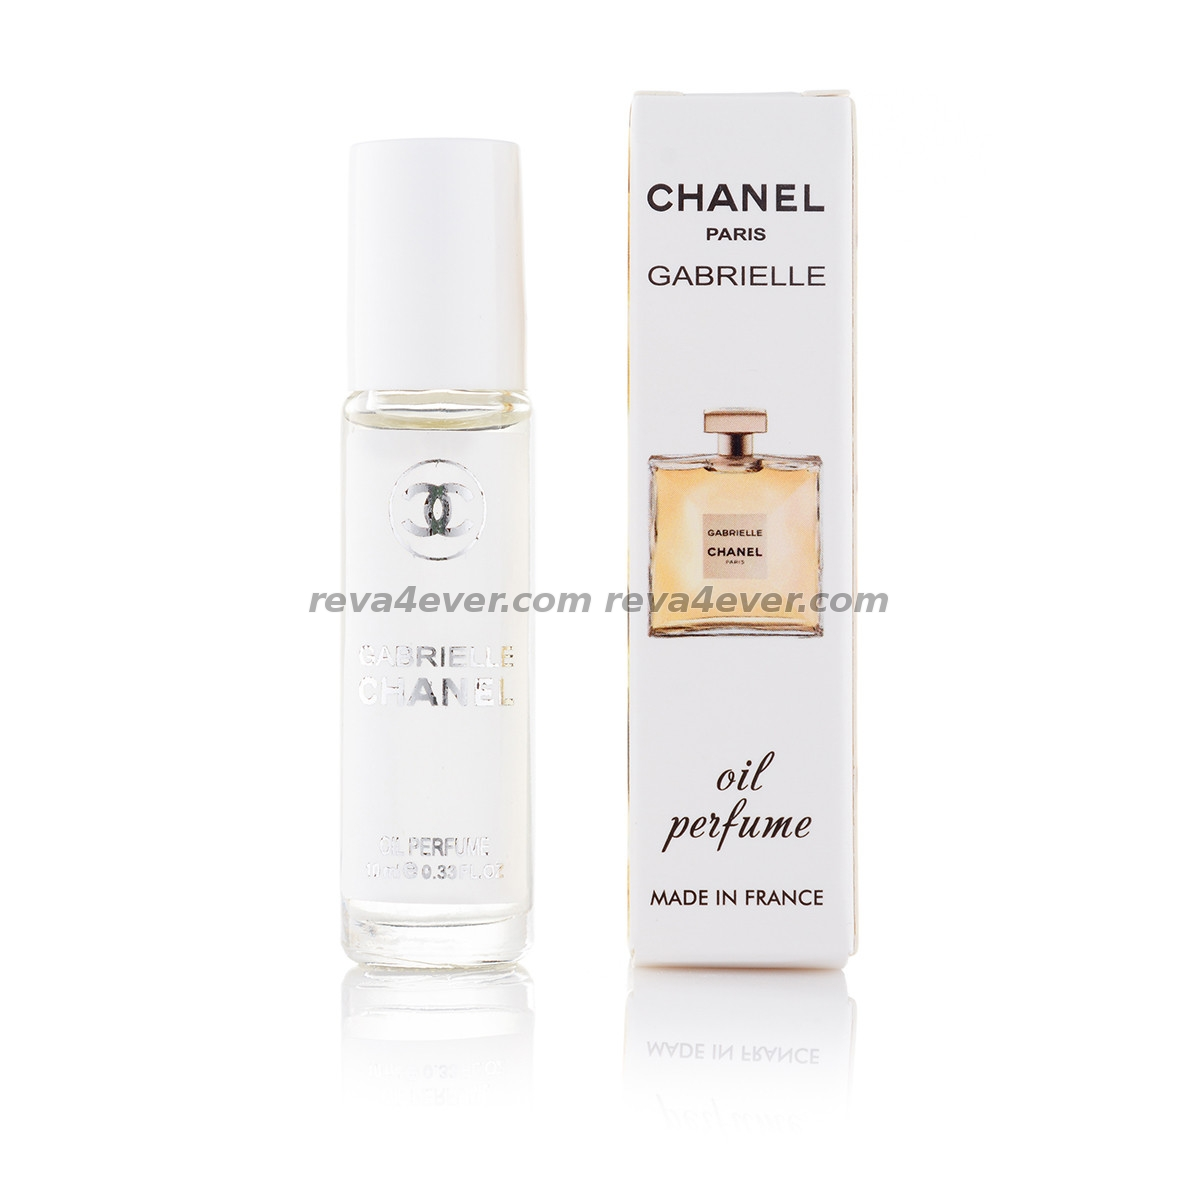 Chanel Gabrielle 10 ml oil perfume